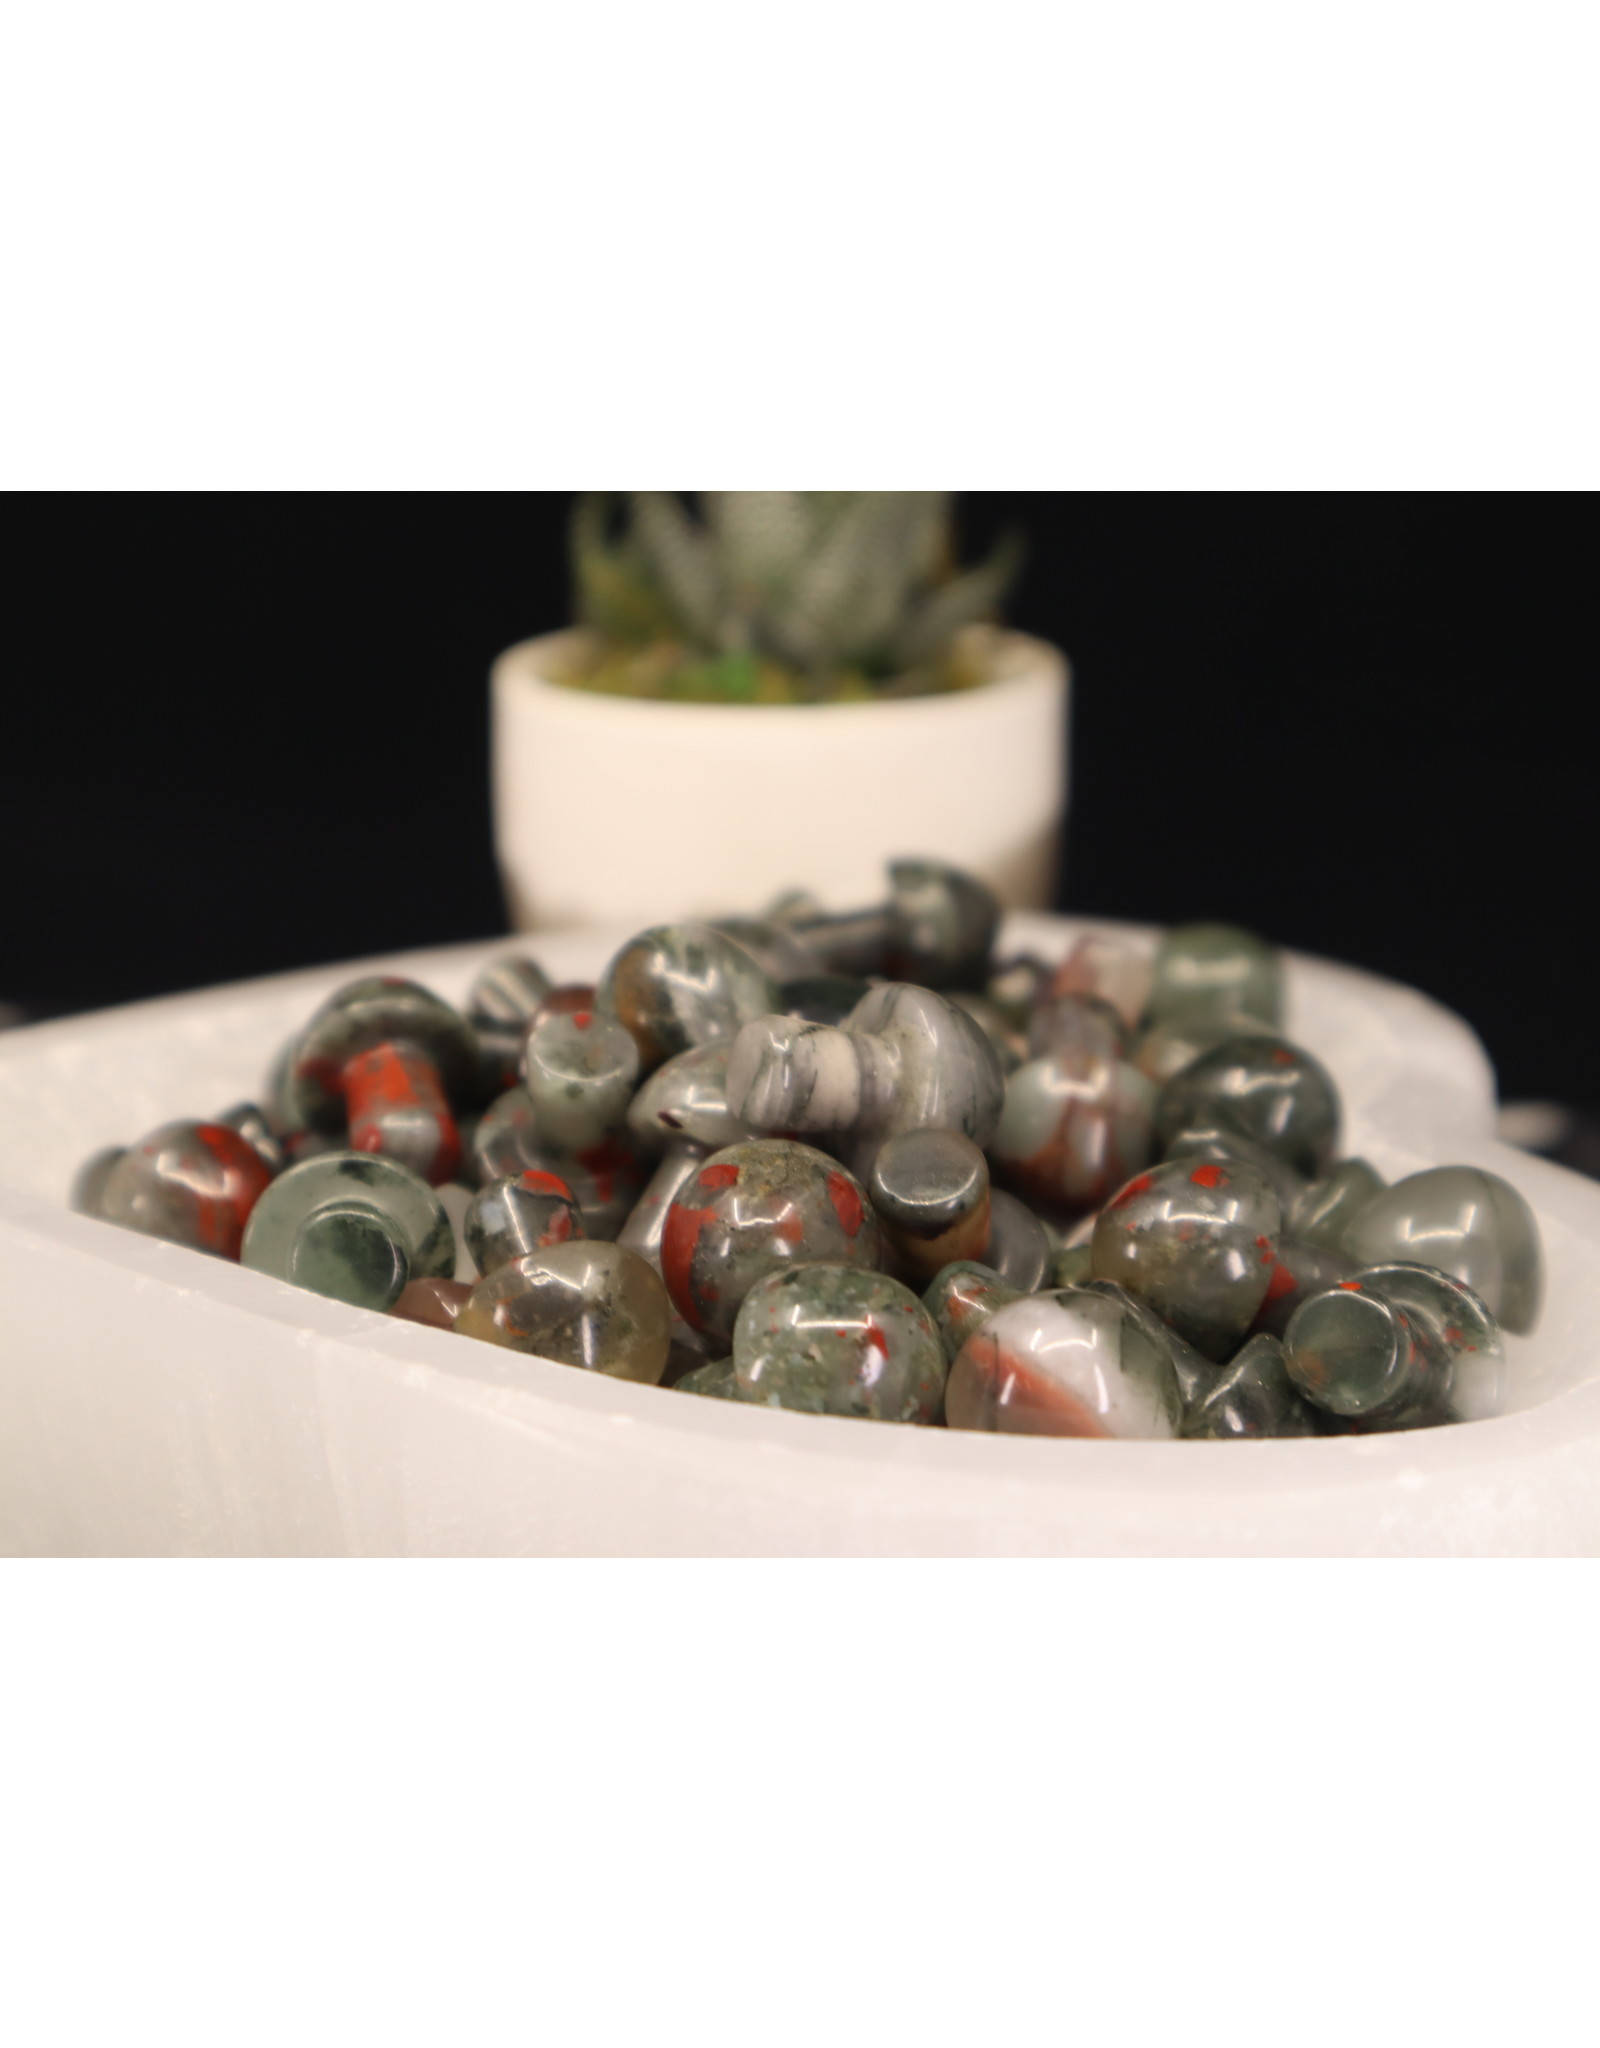 Bloodstone Mini Mushrooms